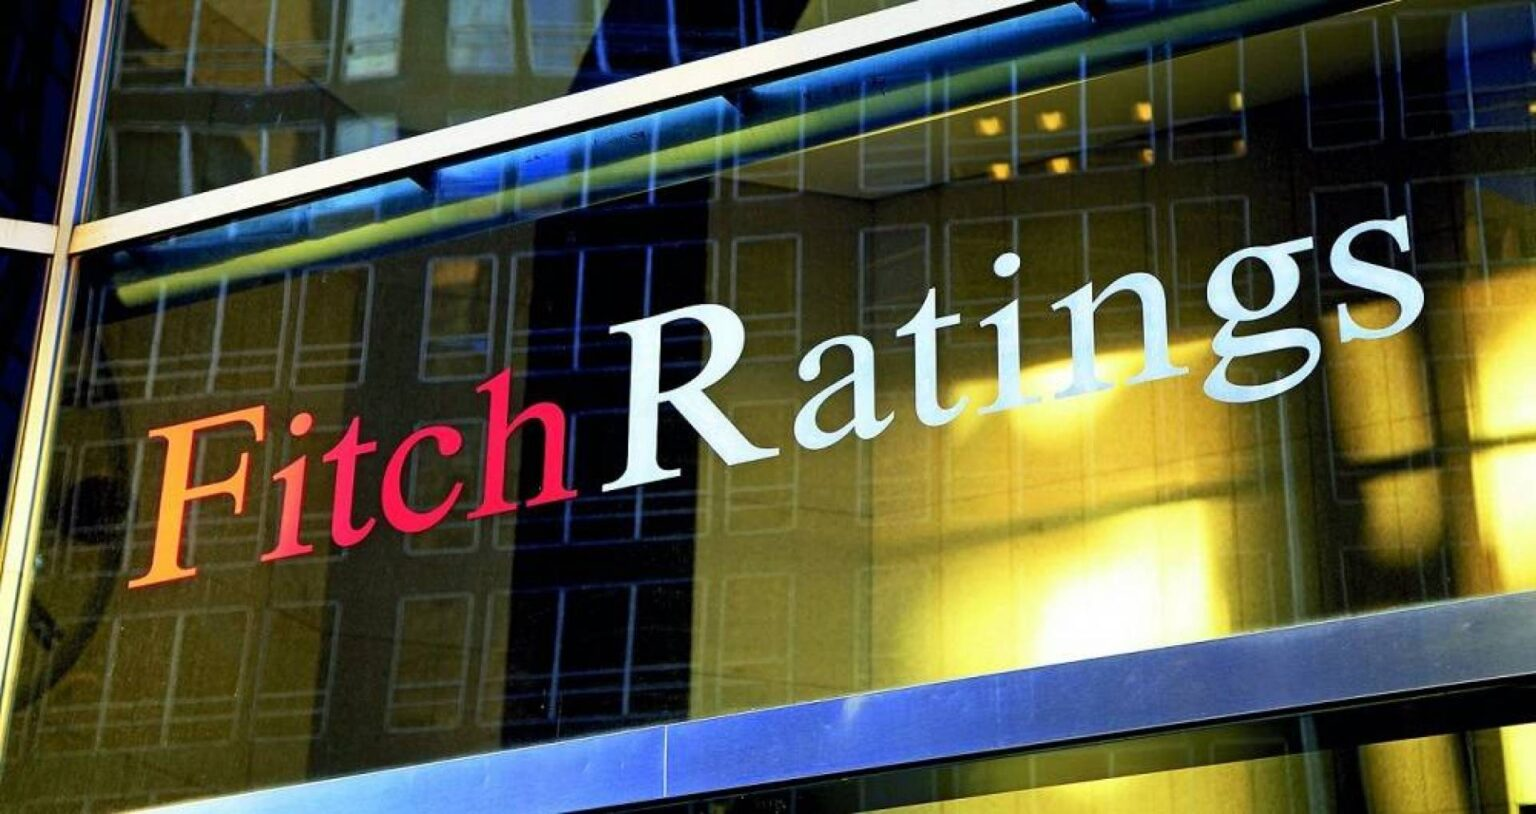 Fitch said it is unlikely that AfCFTA alone would lead to changes in the sovereign credit rating of countries.